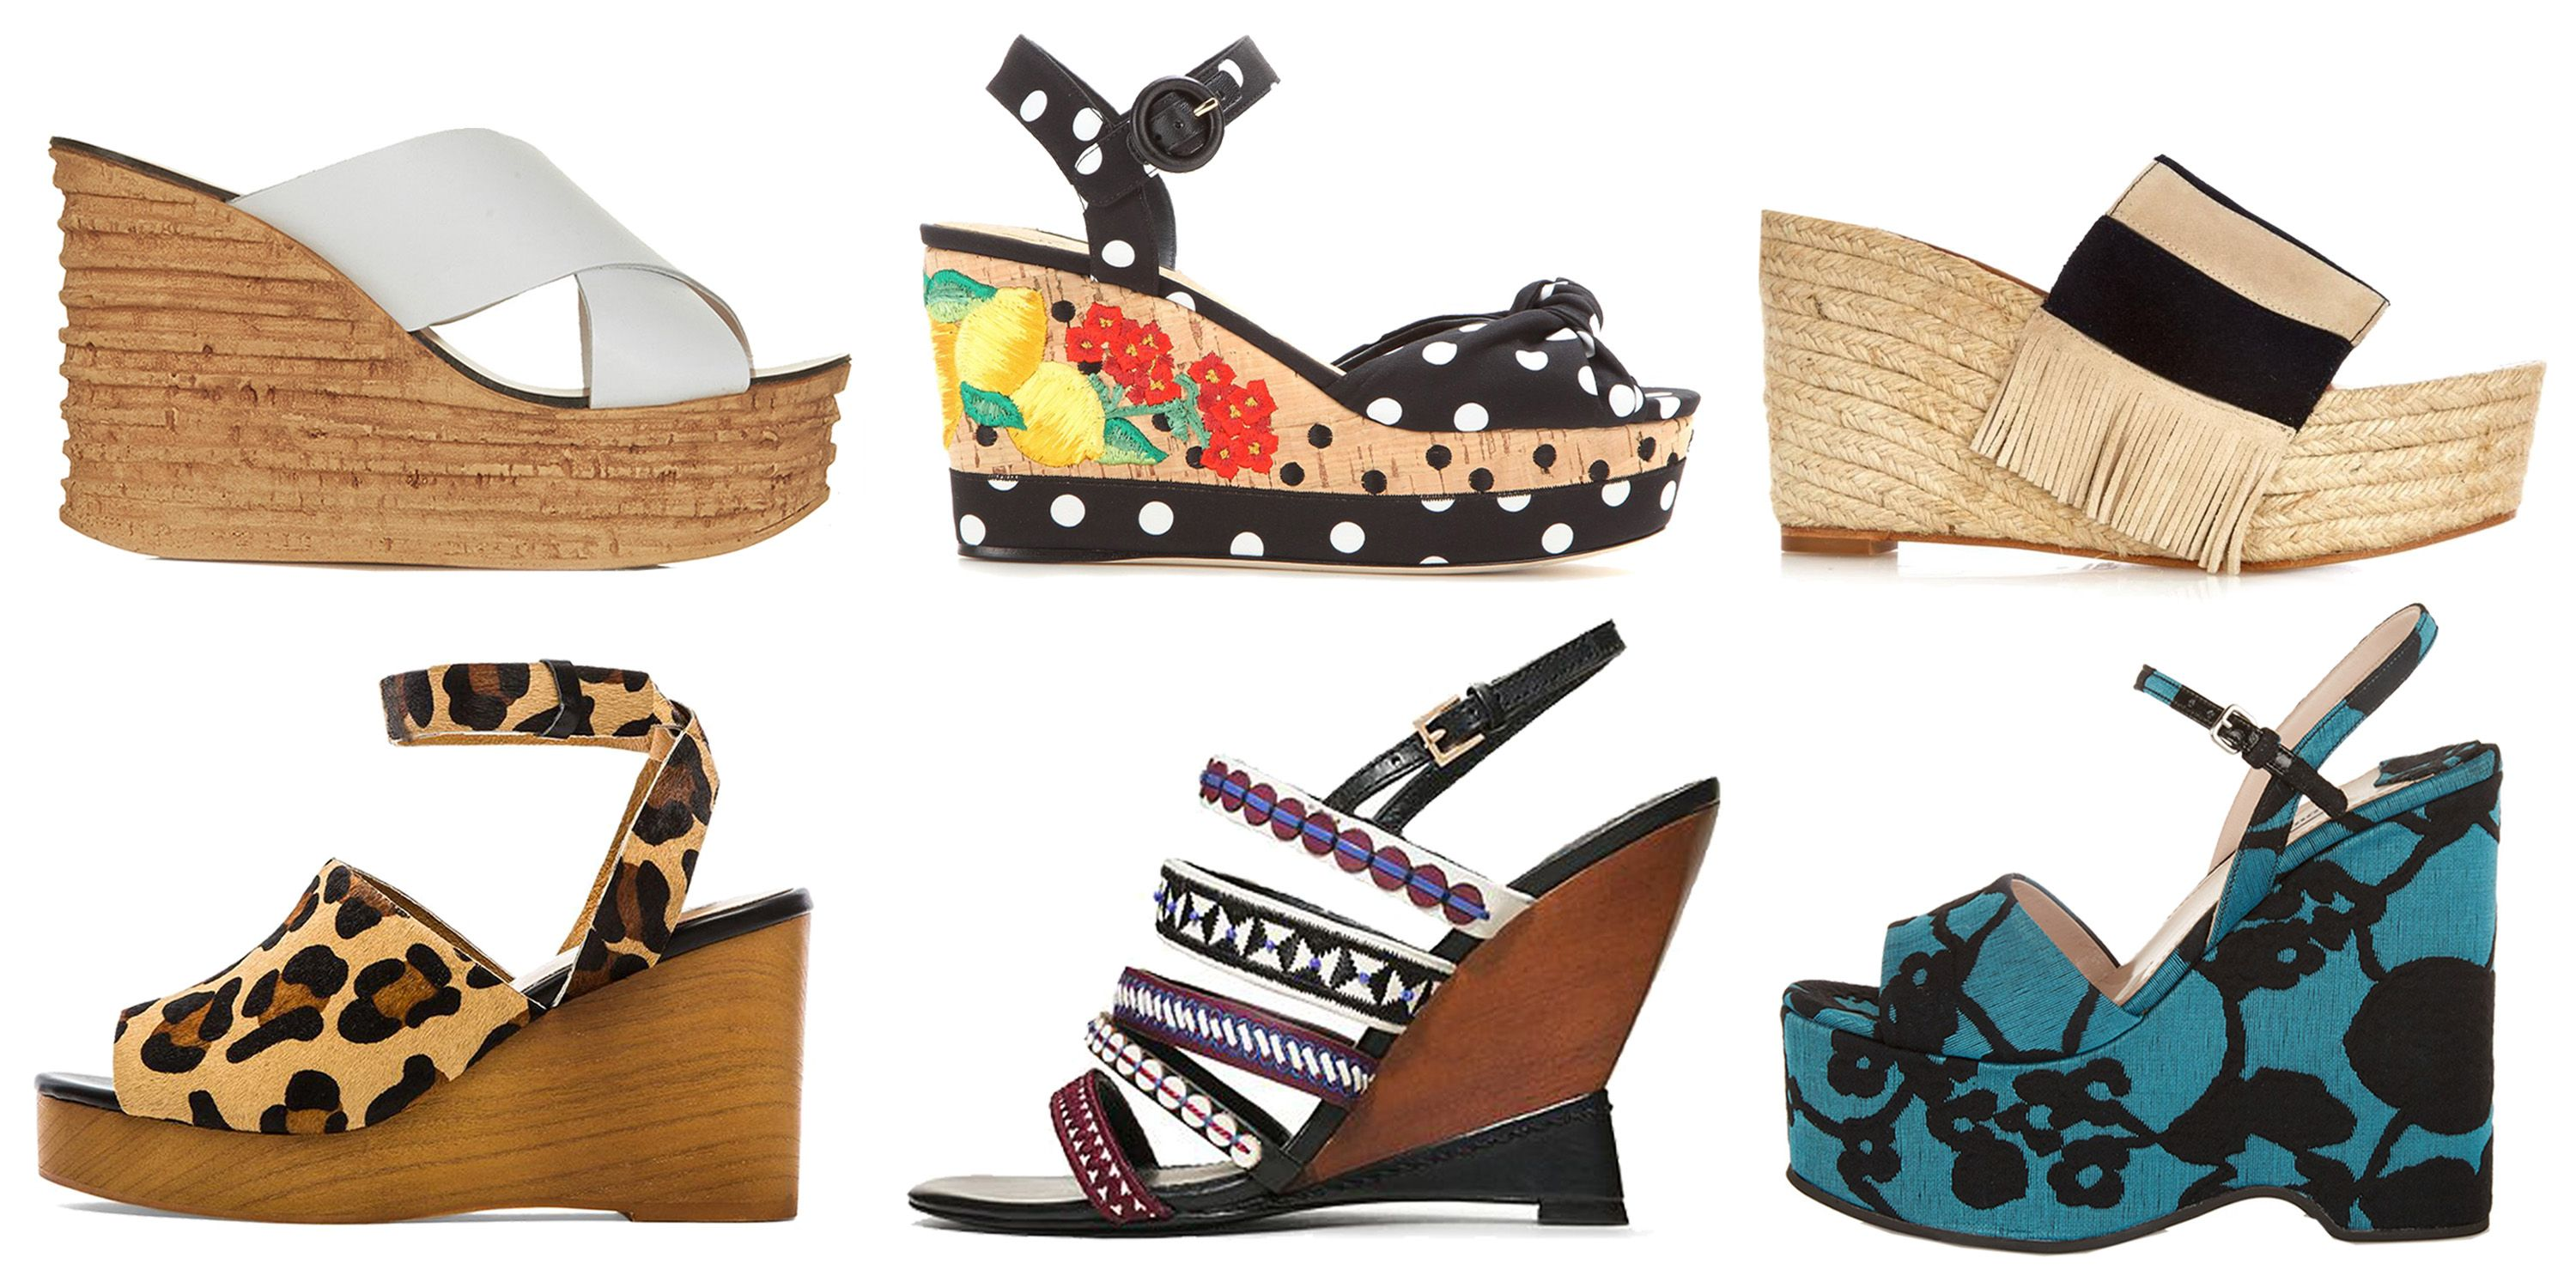 98f39cf62 32 Wedge Sandals to Step Up Your Shoe Game This Spring